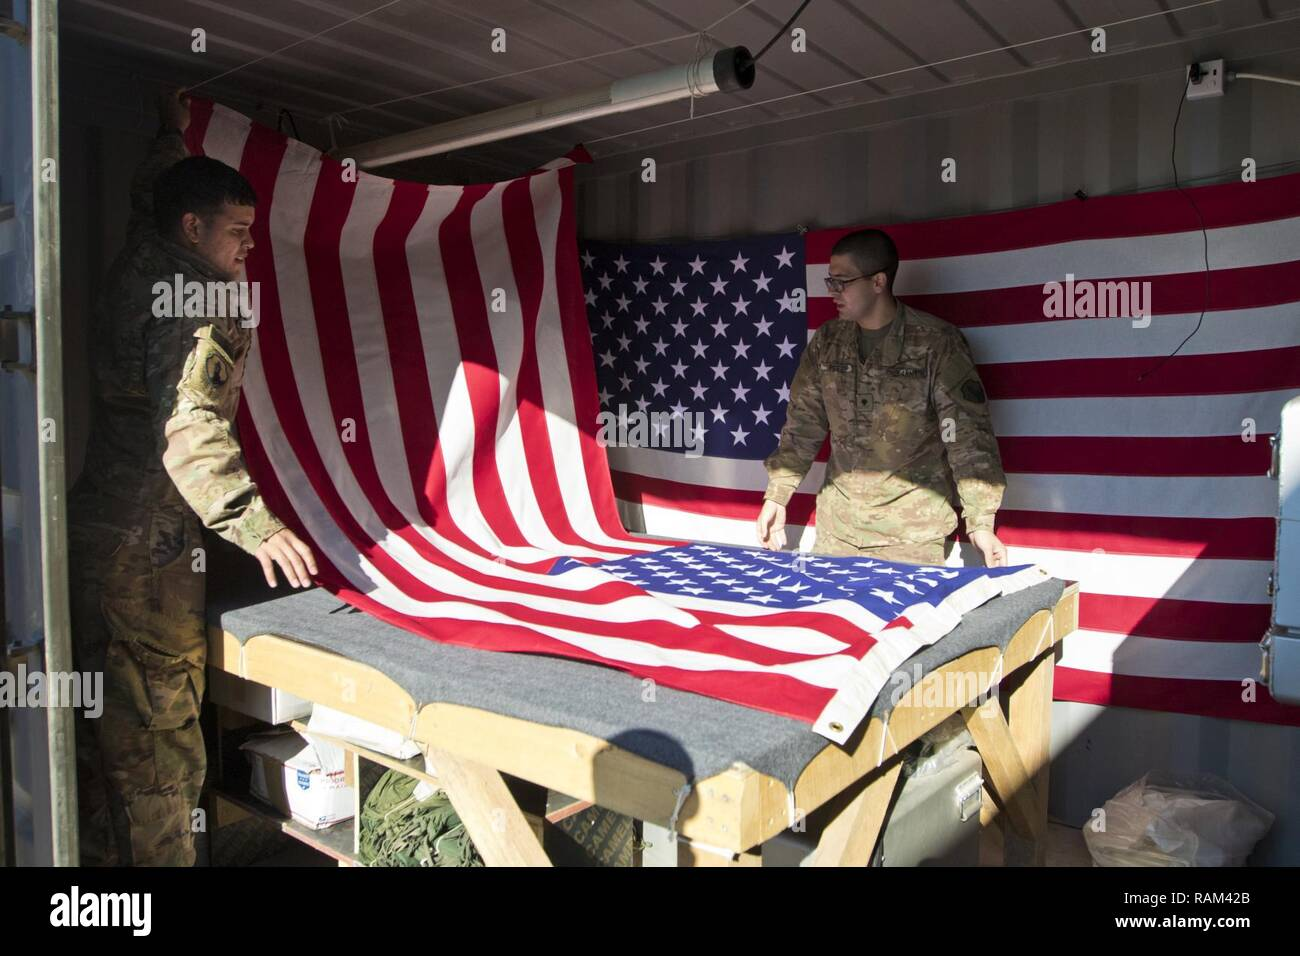 Spc. Brian Ramirez, (left), and Spc. Jose Perez, (right), both mortuary affairs specialists with the 246th Quartermaster Company (Mortuary Affairs), an U.S. Army Reserve unit based out of Mayaguez, Puerto Rico, drapes an American Flag over a transfer case in Erbil, Iraq on February 3, 2017. - Stock Image